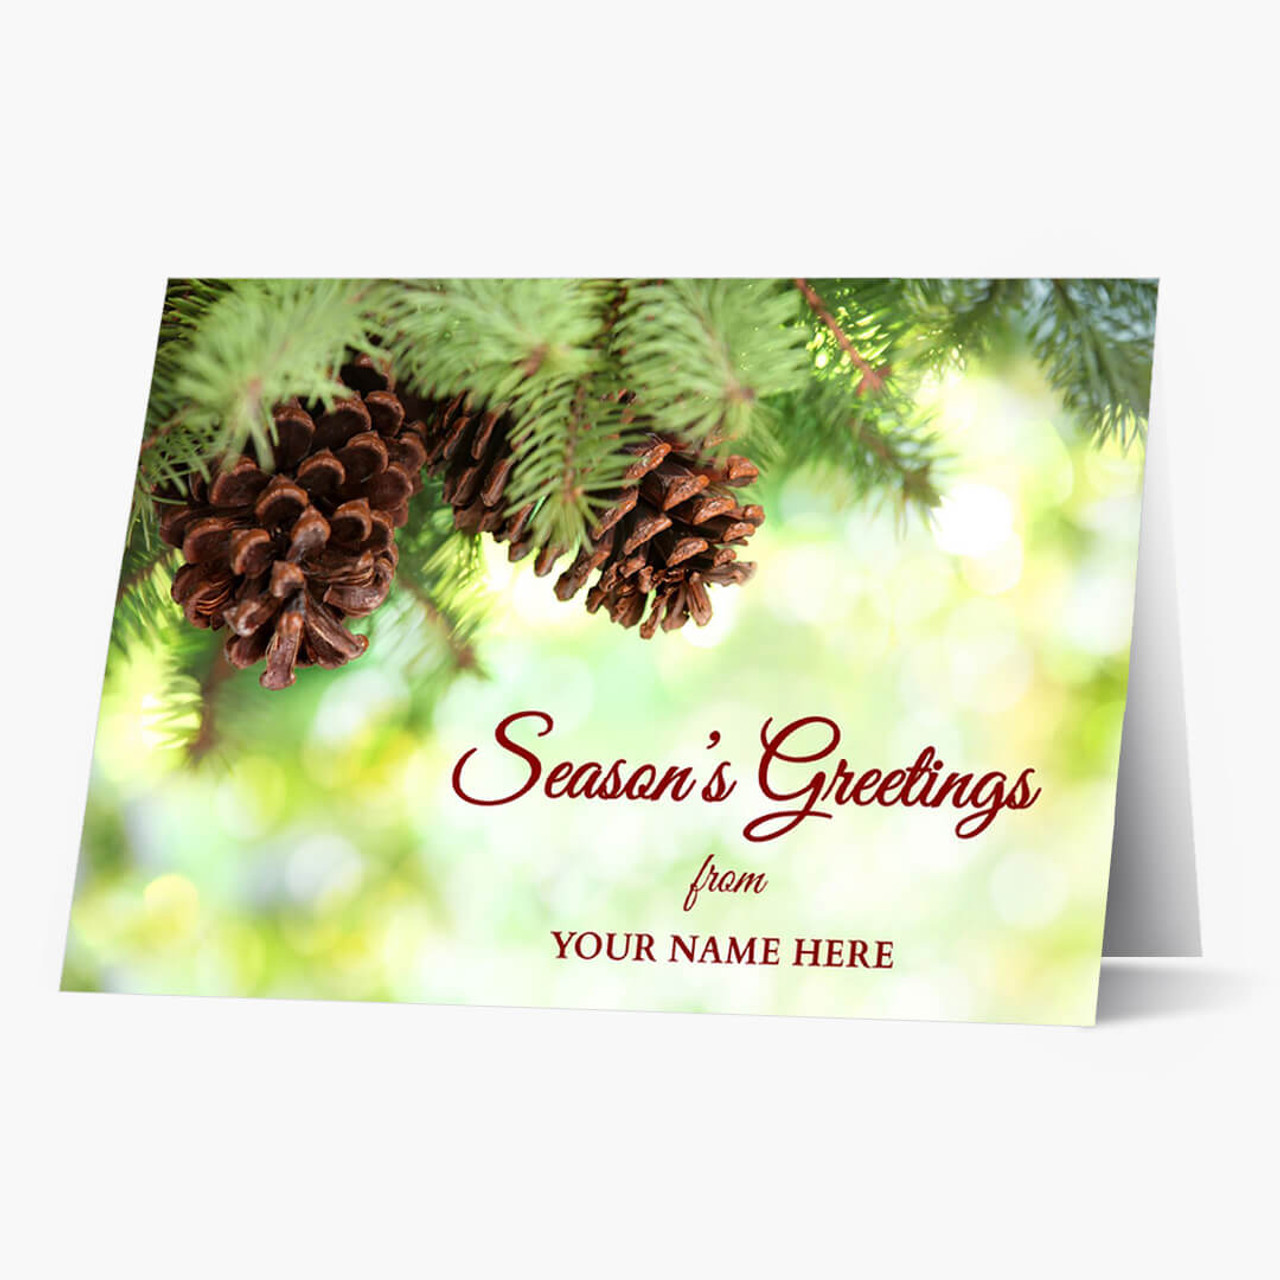 Pine Cone Greetings Christmas Card